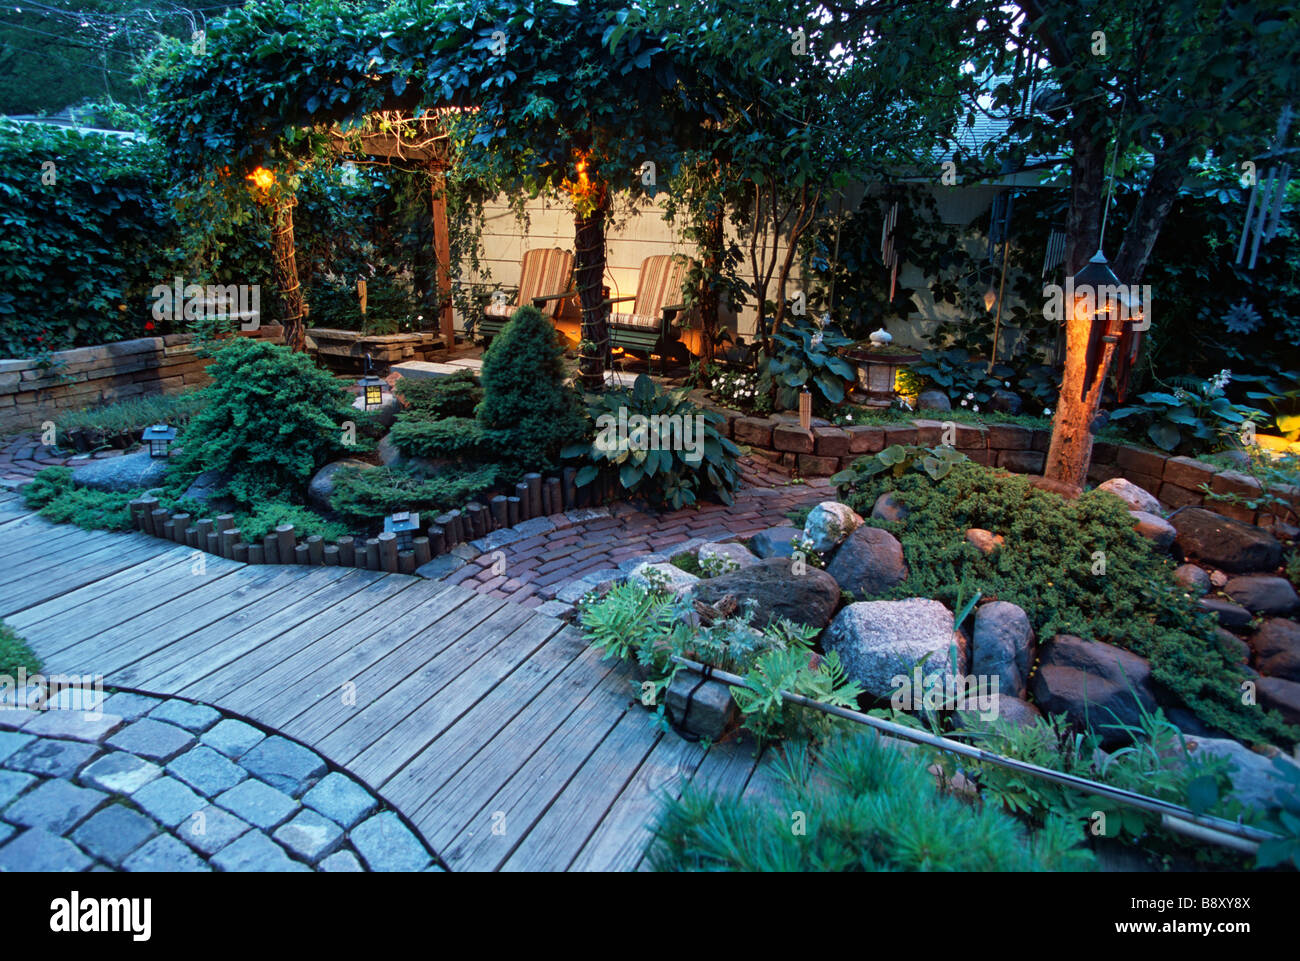 JAPANESE INSPIRED GARDEN IN MINNESOTA INCLUDES OUTDOOR SEATING AREA WITH  LIGHTS FOR EVENING USE.